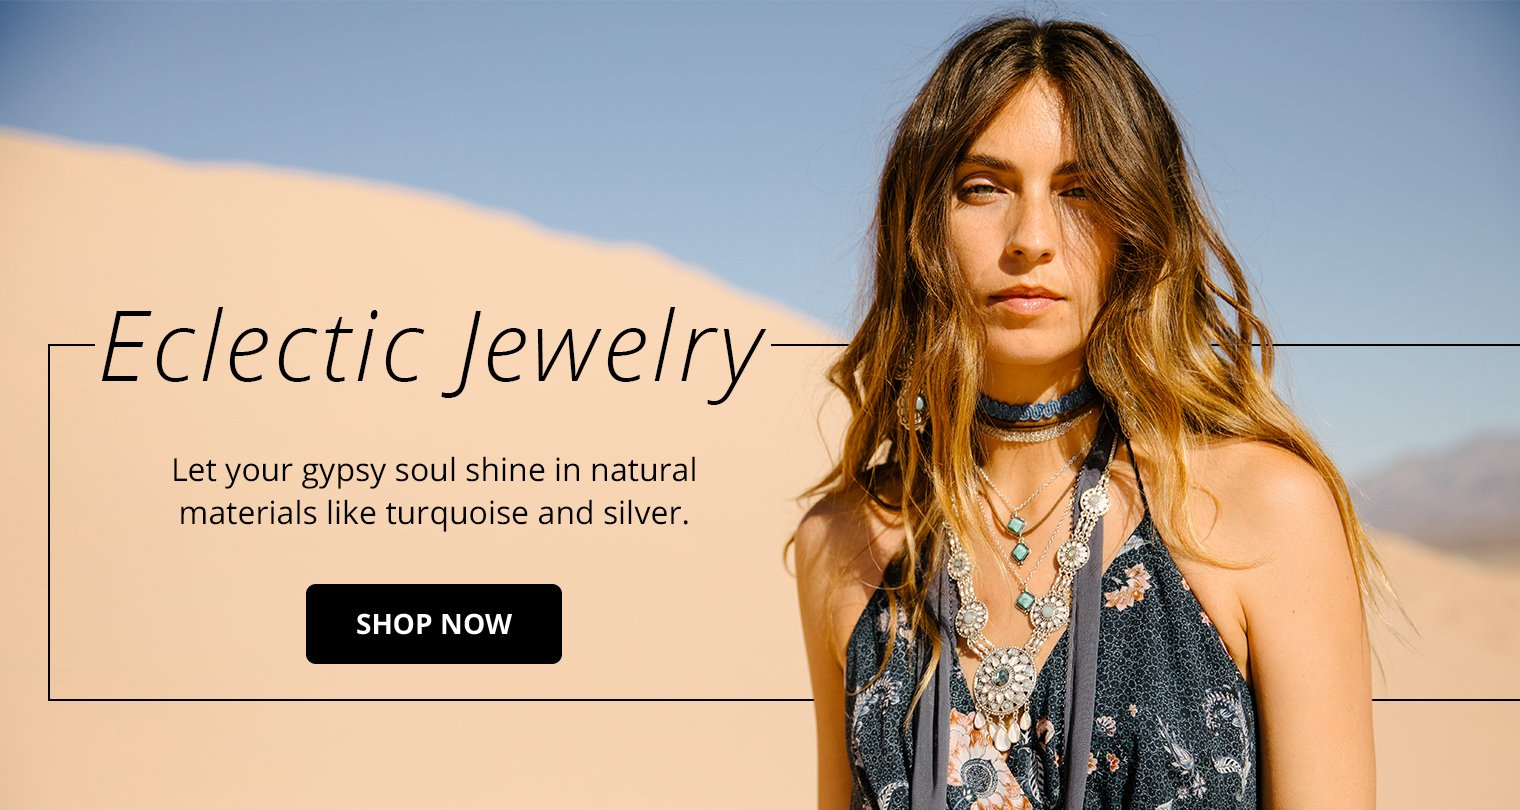 Let Your Gypsy Soul Shine In Natural Materials Like Turquoise And Silver